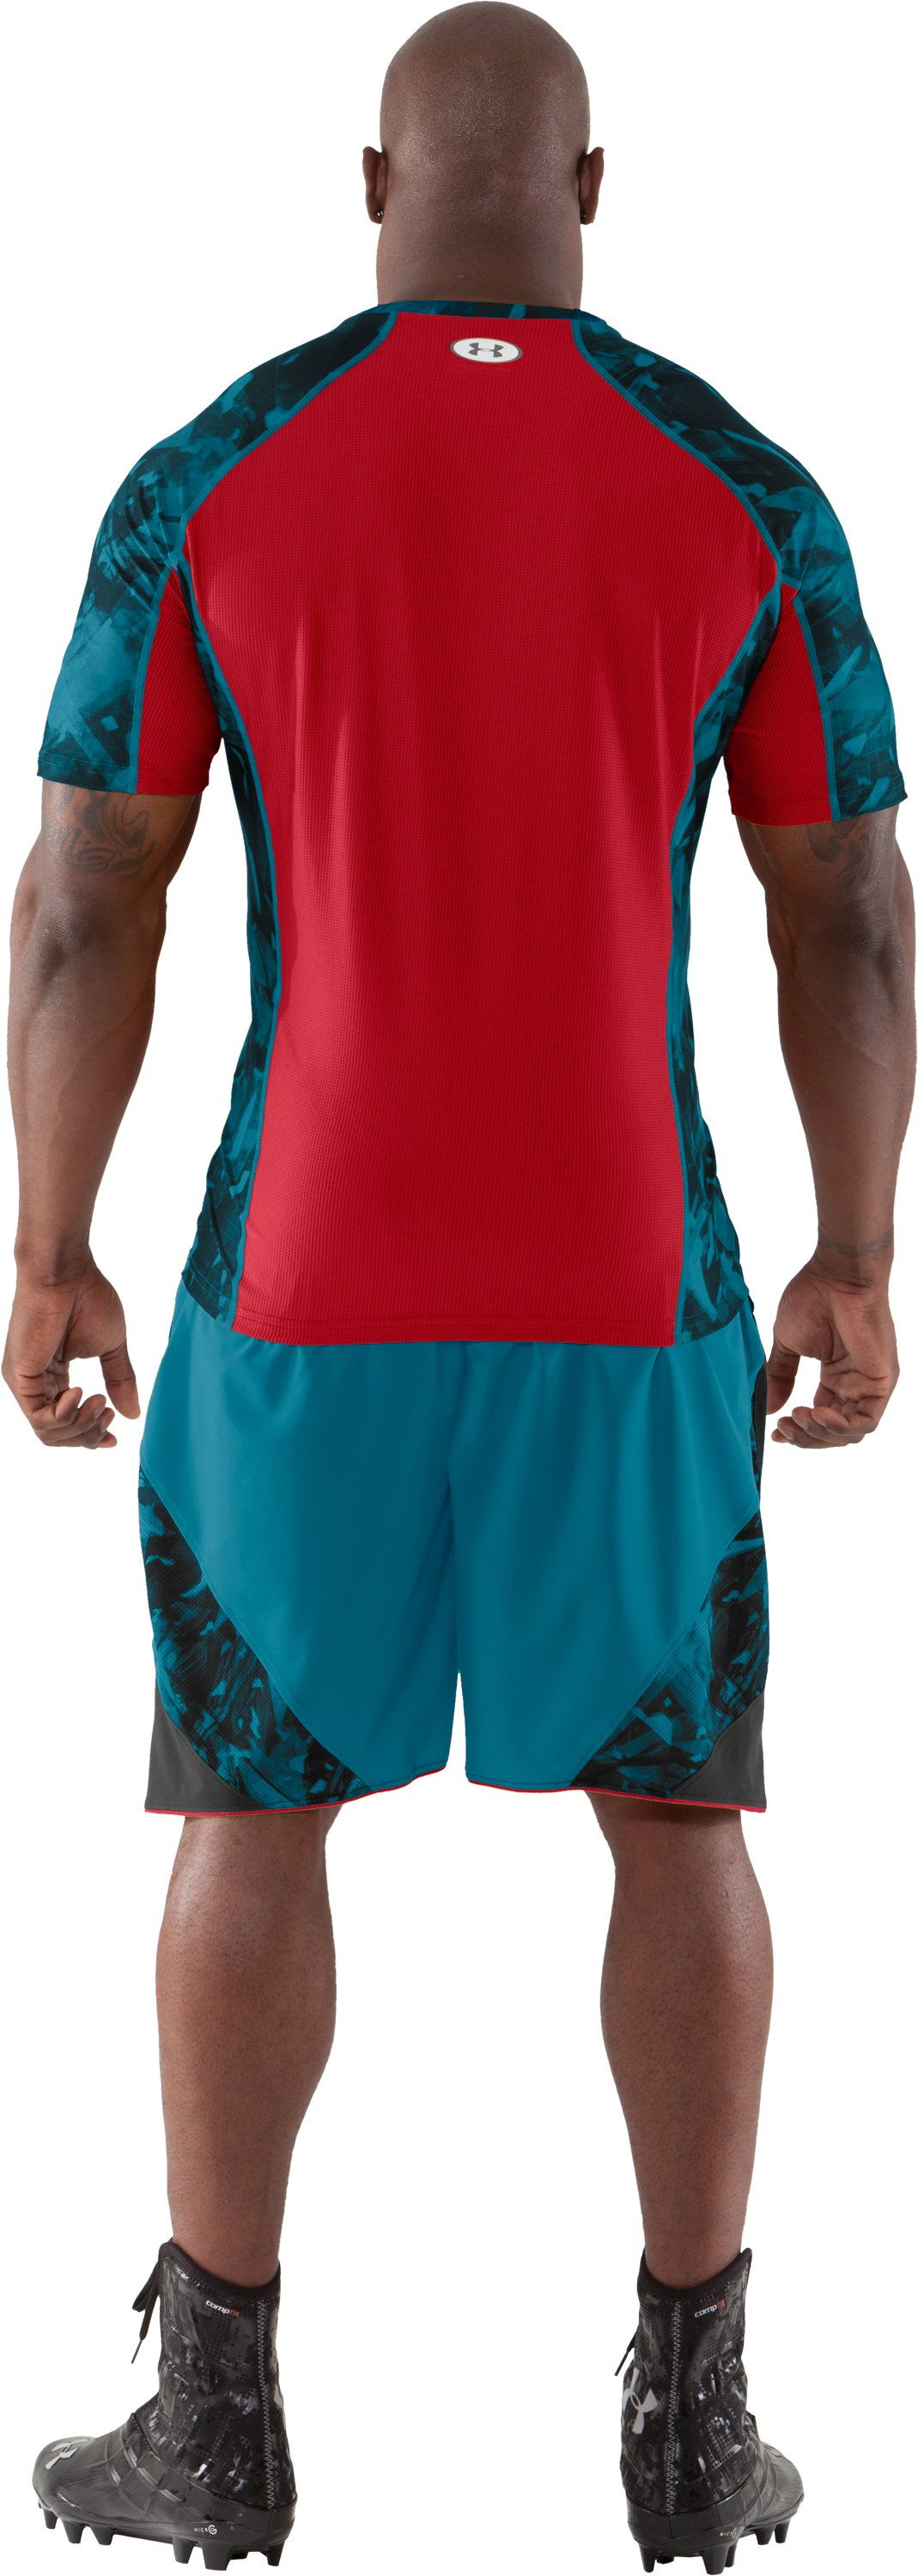 Men's NFL Combine Authentic Fitted Short Sleeve, Capri, Back